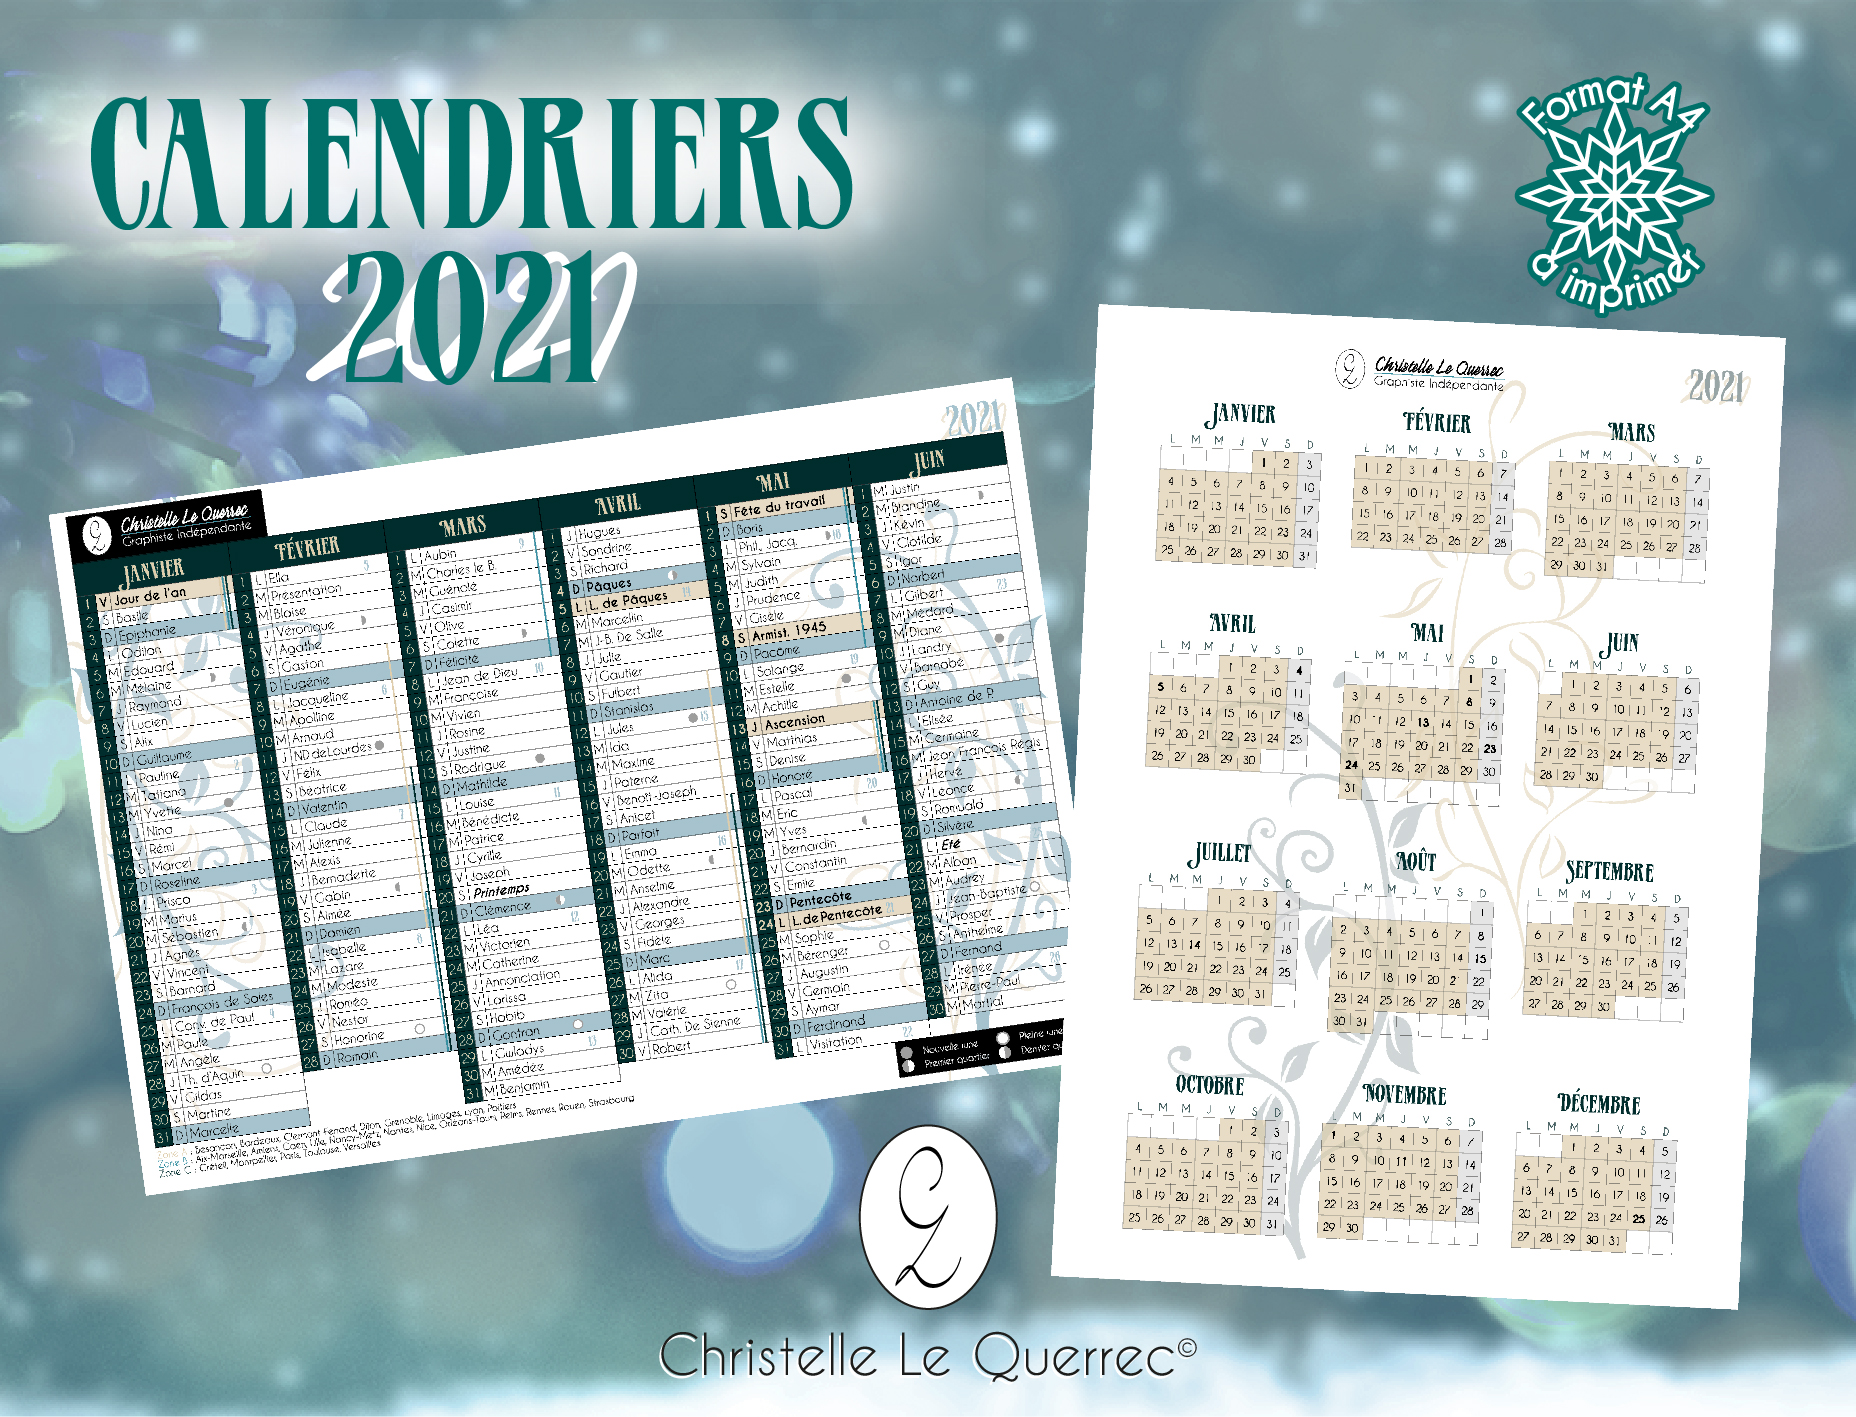 Calendriers 2021 - Calendrier A4